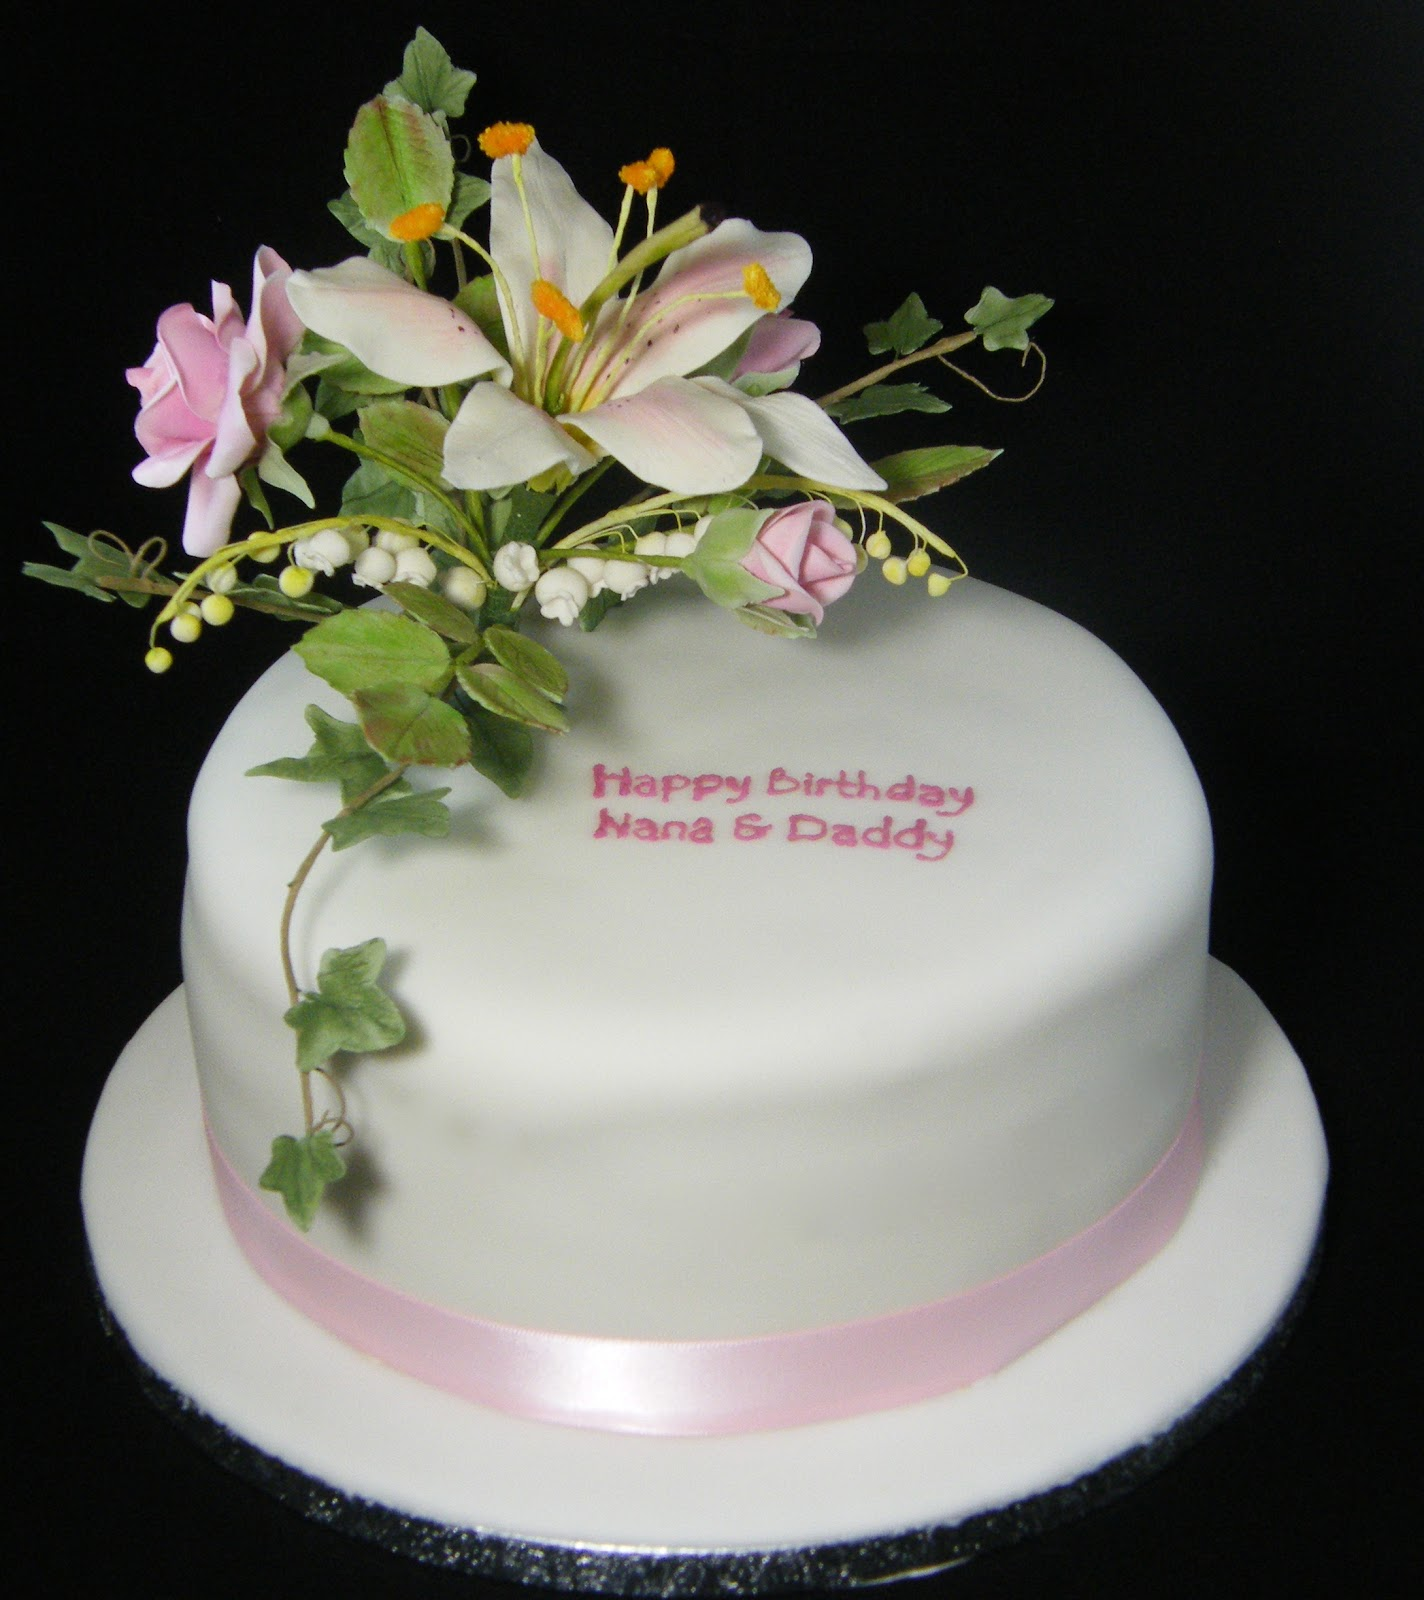 Heartsong cakes and crafts a sugar flower birthday cake a sugar flower birthday cake izmirmasajfo